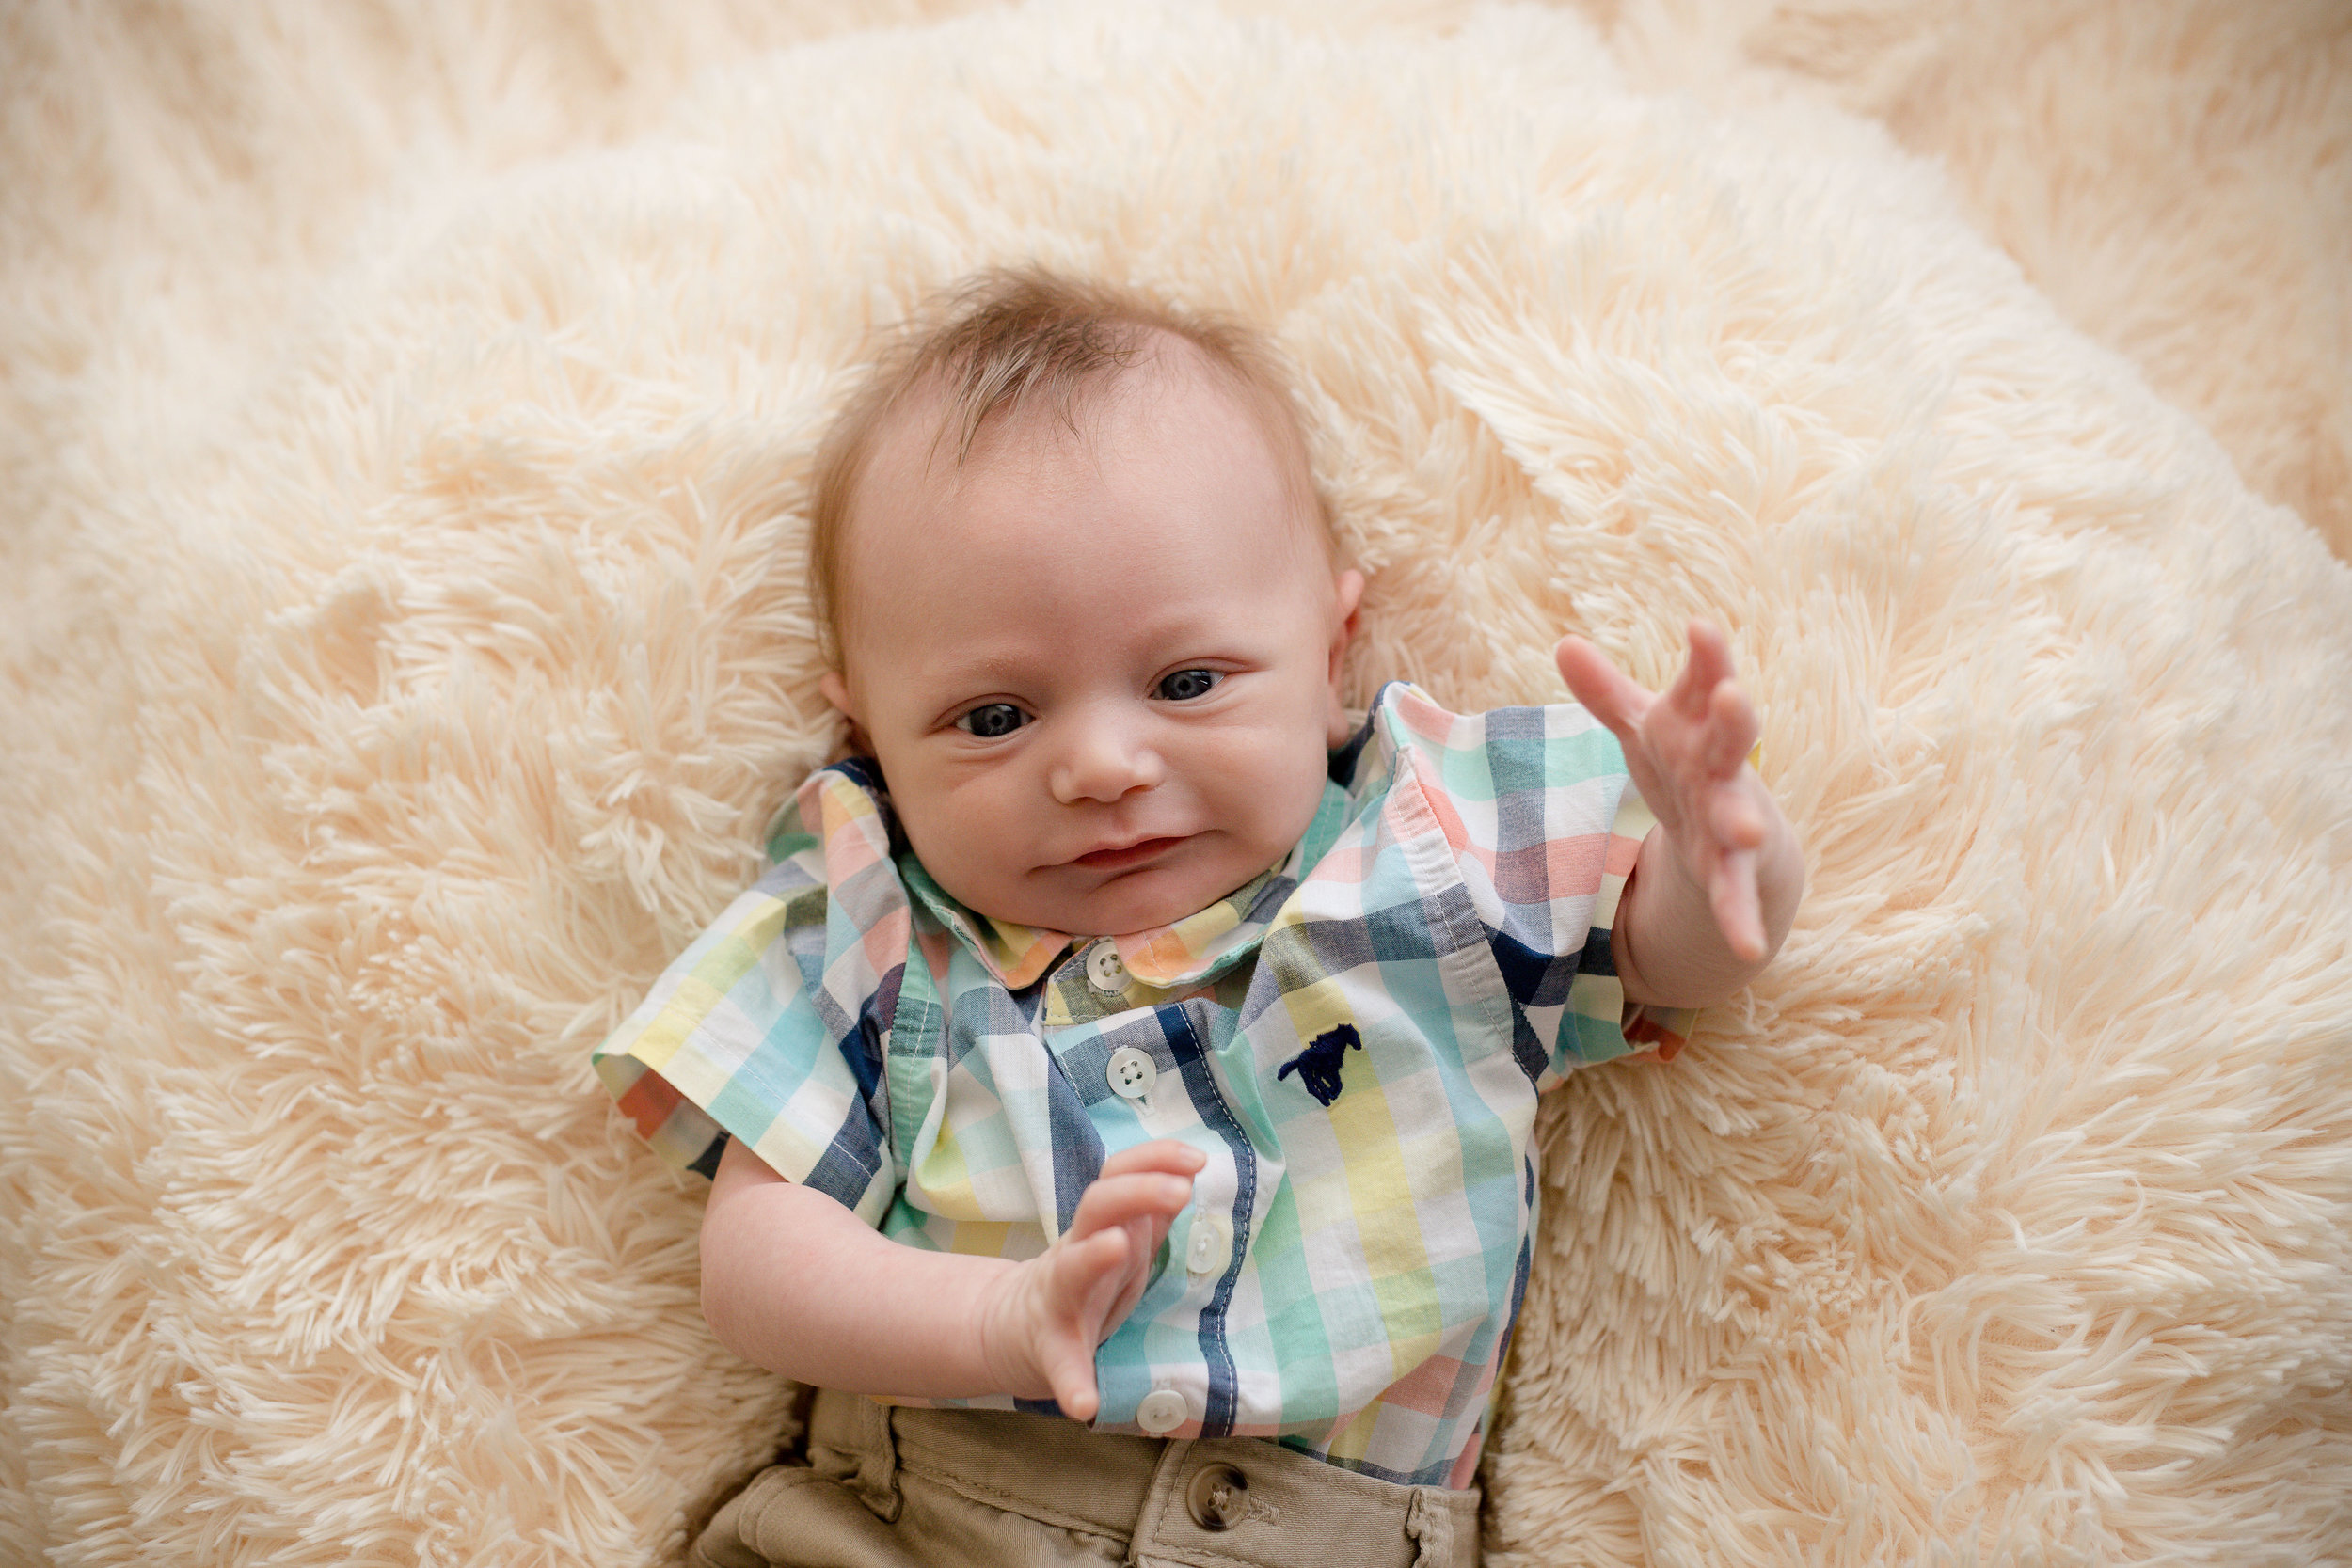 Five week old newborn baby boy laying on blanket and smiling at camera during indoor photo session.